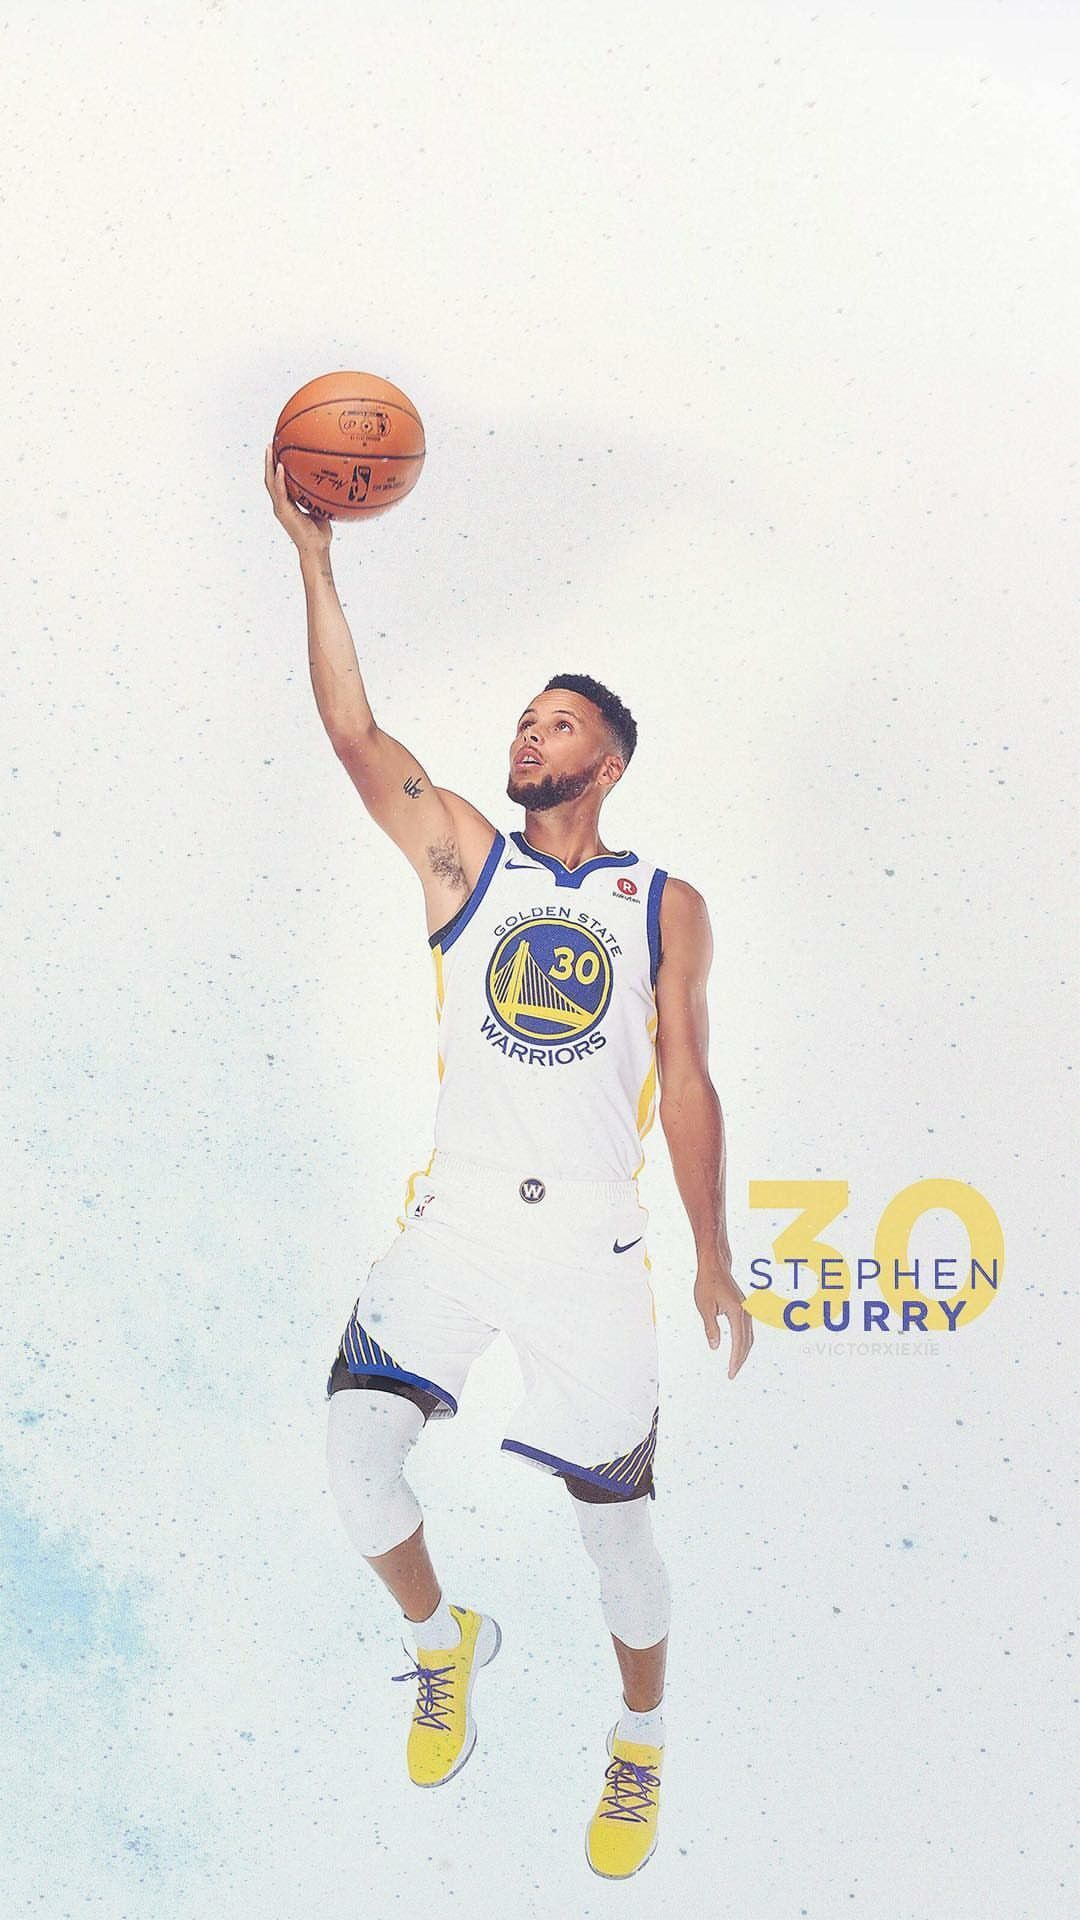 1080x1920 Stephen Curry wallpaper | BASKETBALL | Stephen Curry, Stephen curry ...